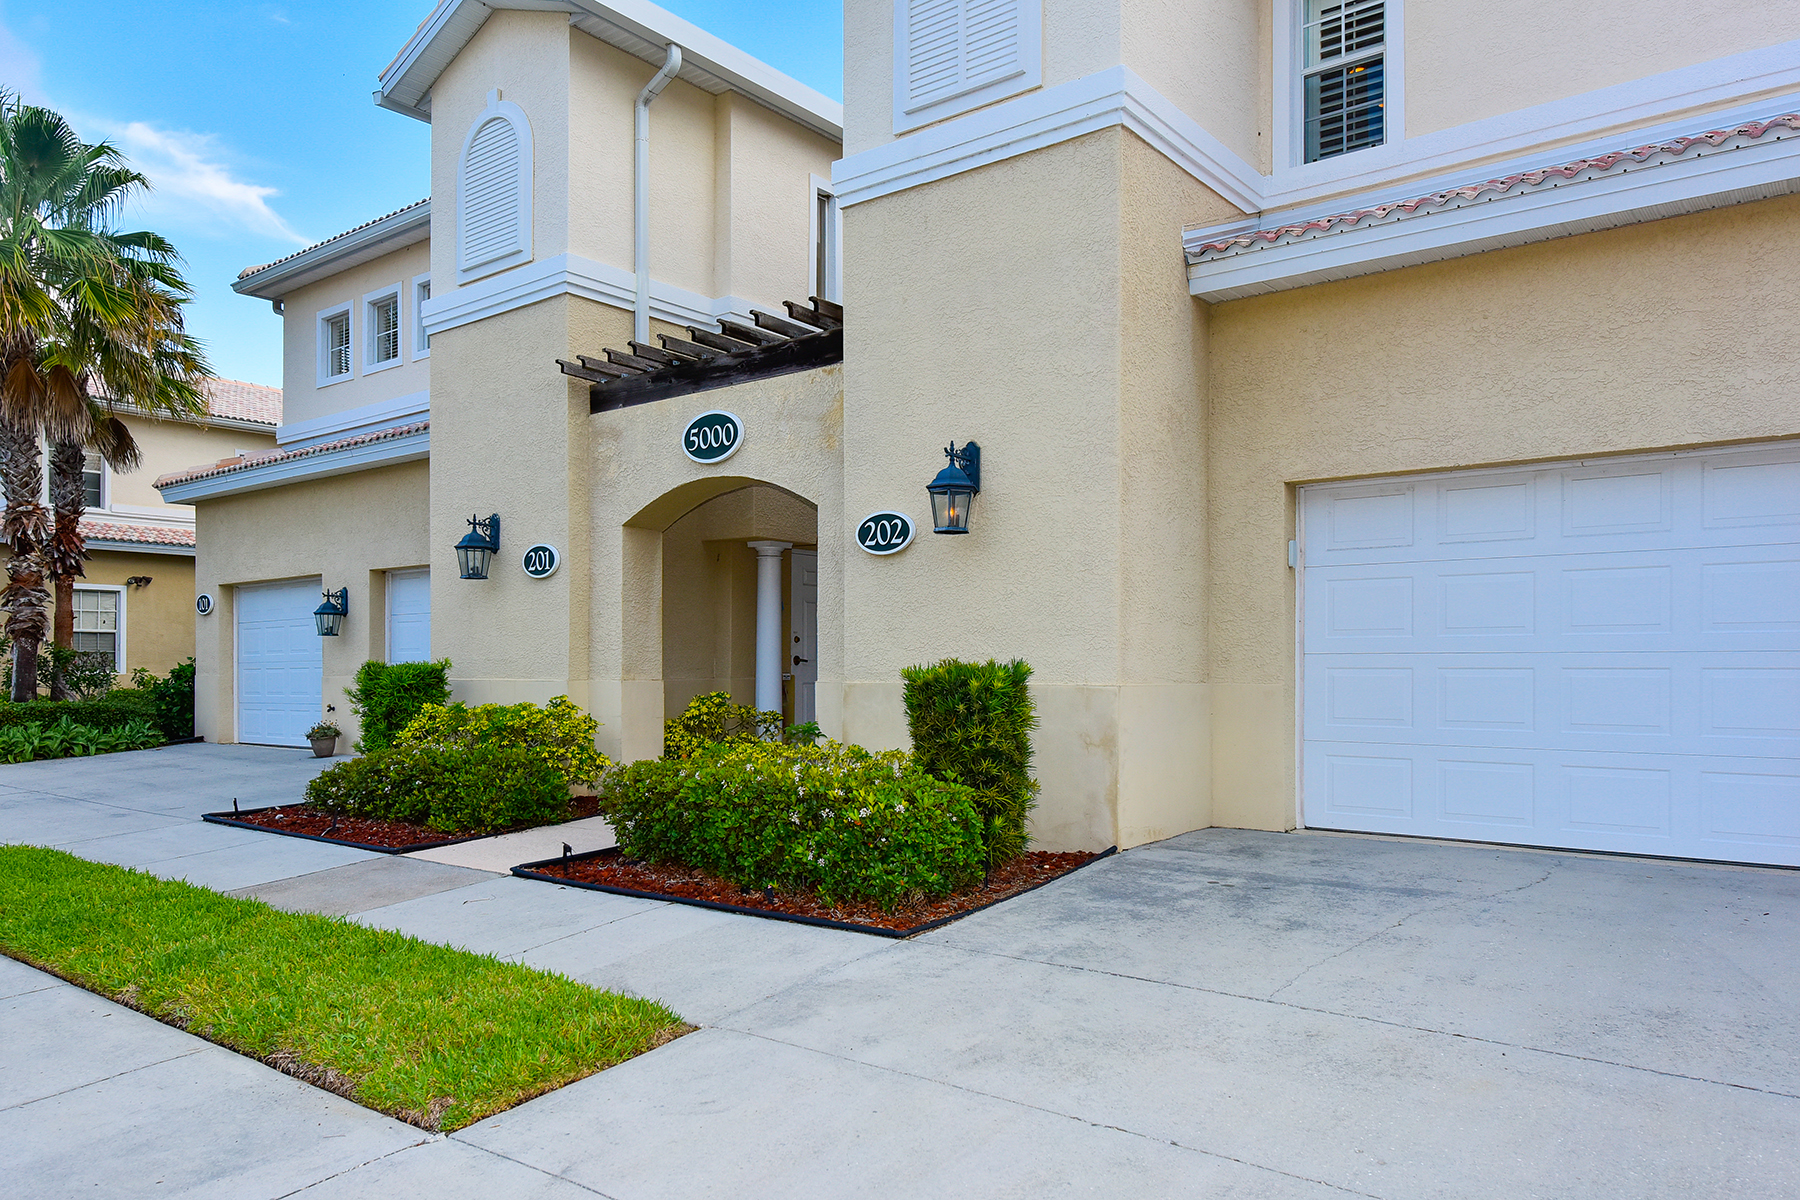 Townhouse for Sale at VILLAS OF VENICE 5000 Ibis Way 202 Venice, Florida, 34292 United States